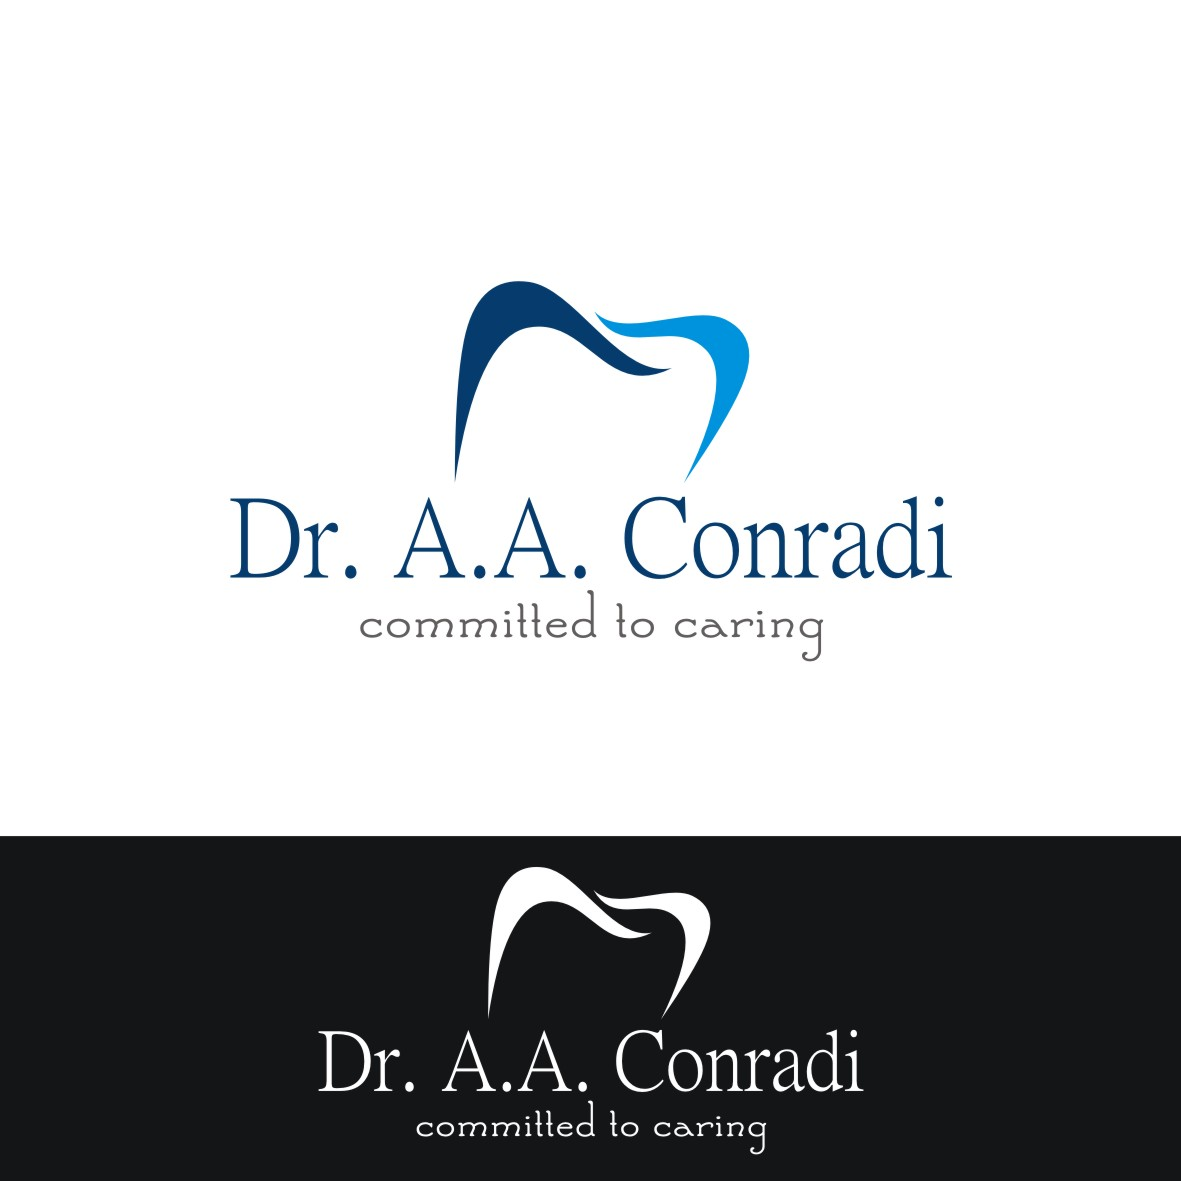 Logo Design by arteo_design - Entry No. 40 in the Logo Design Contest Unique Logo Design Wanted for Dr. A.A. Conradi.